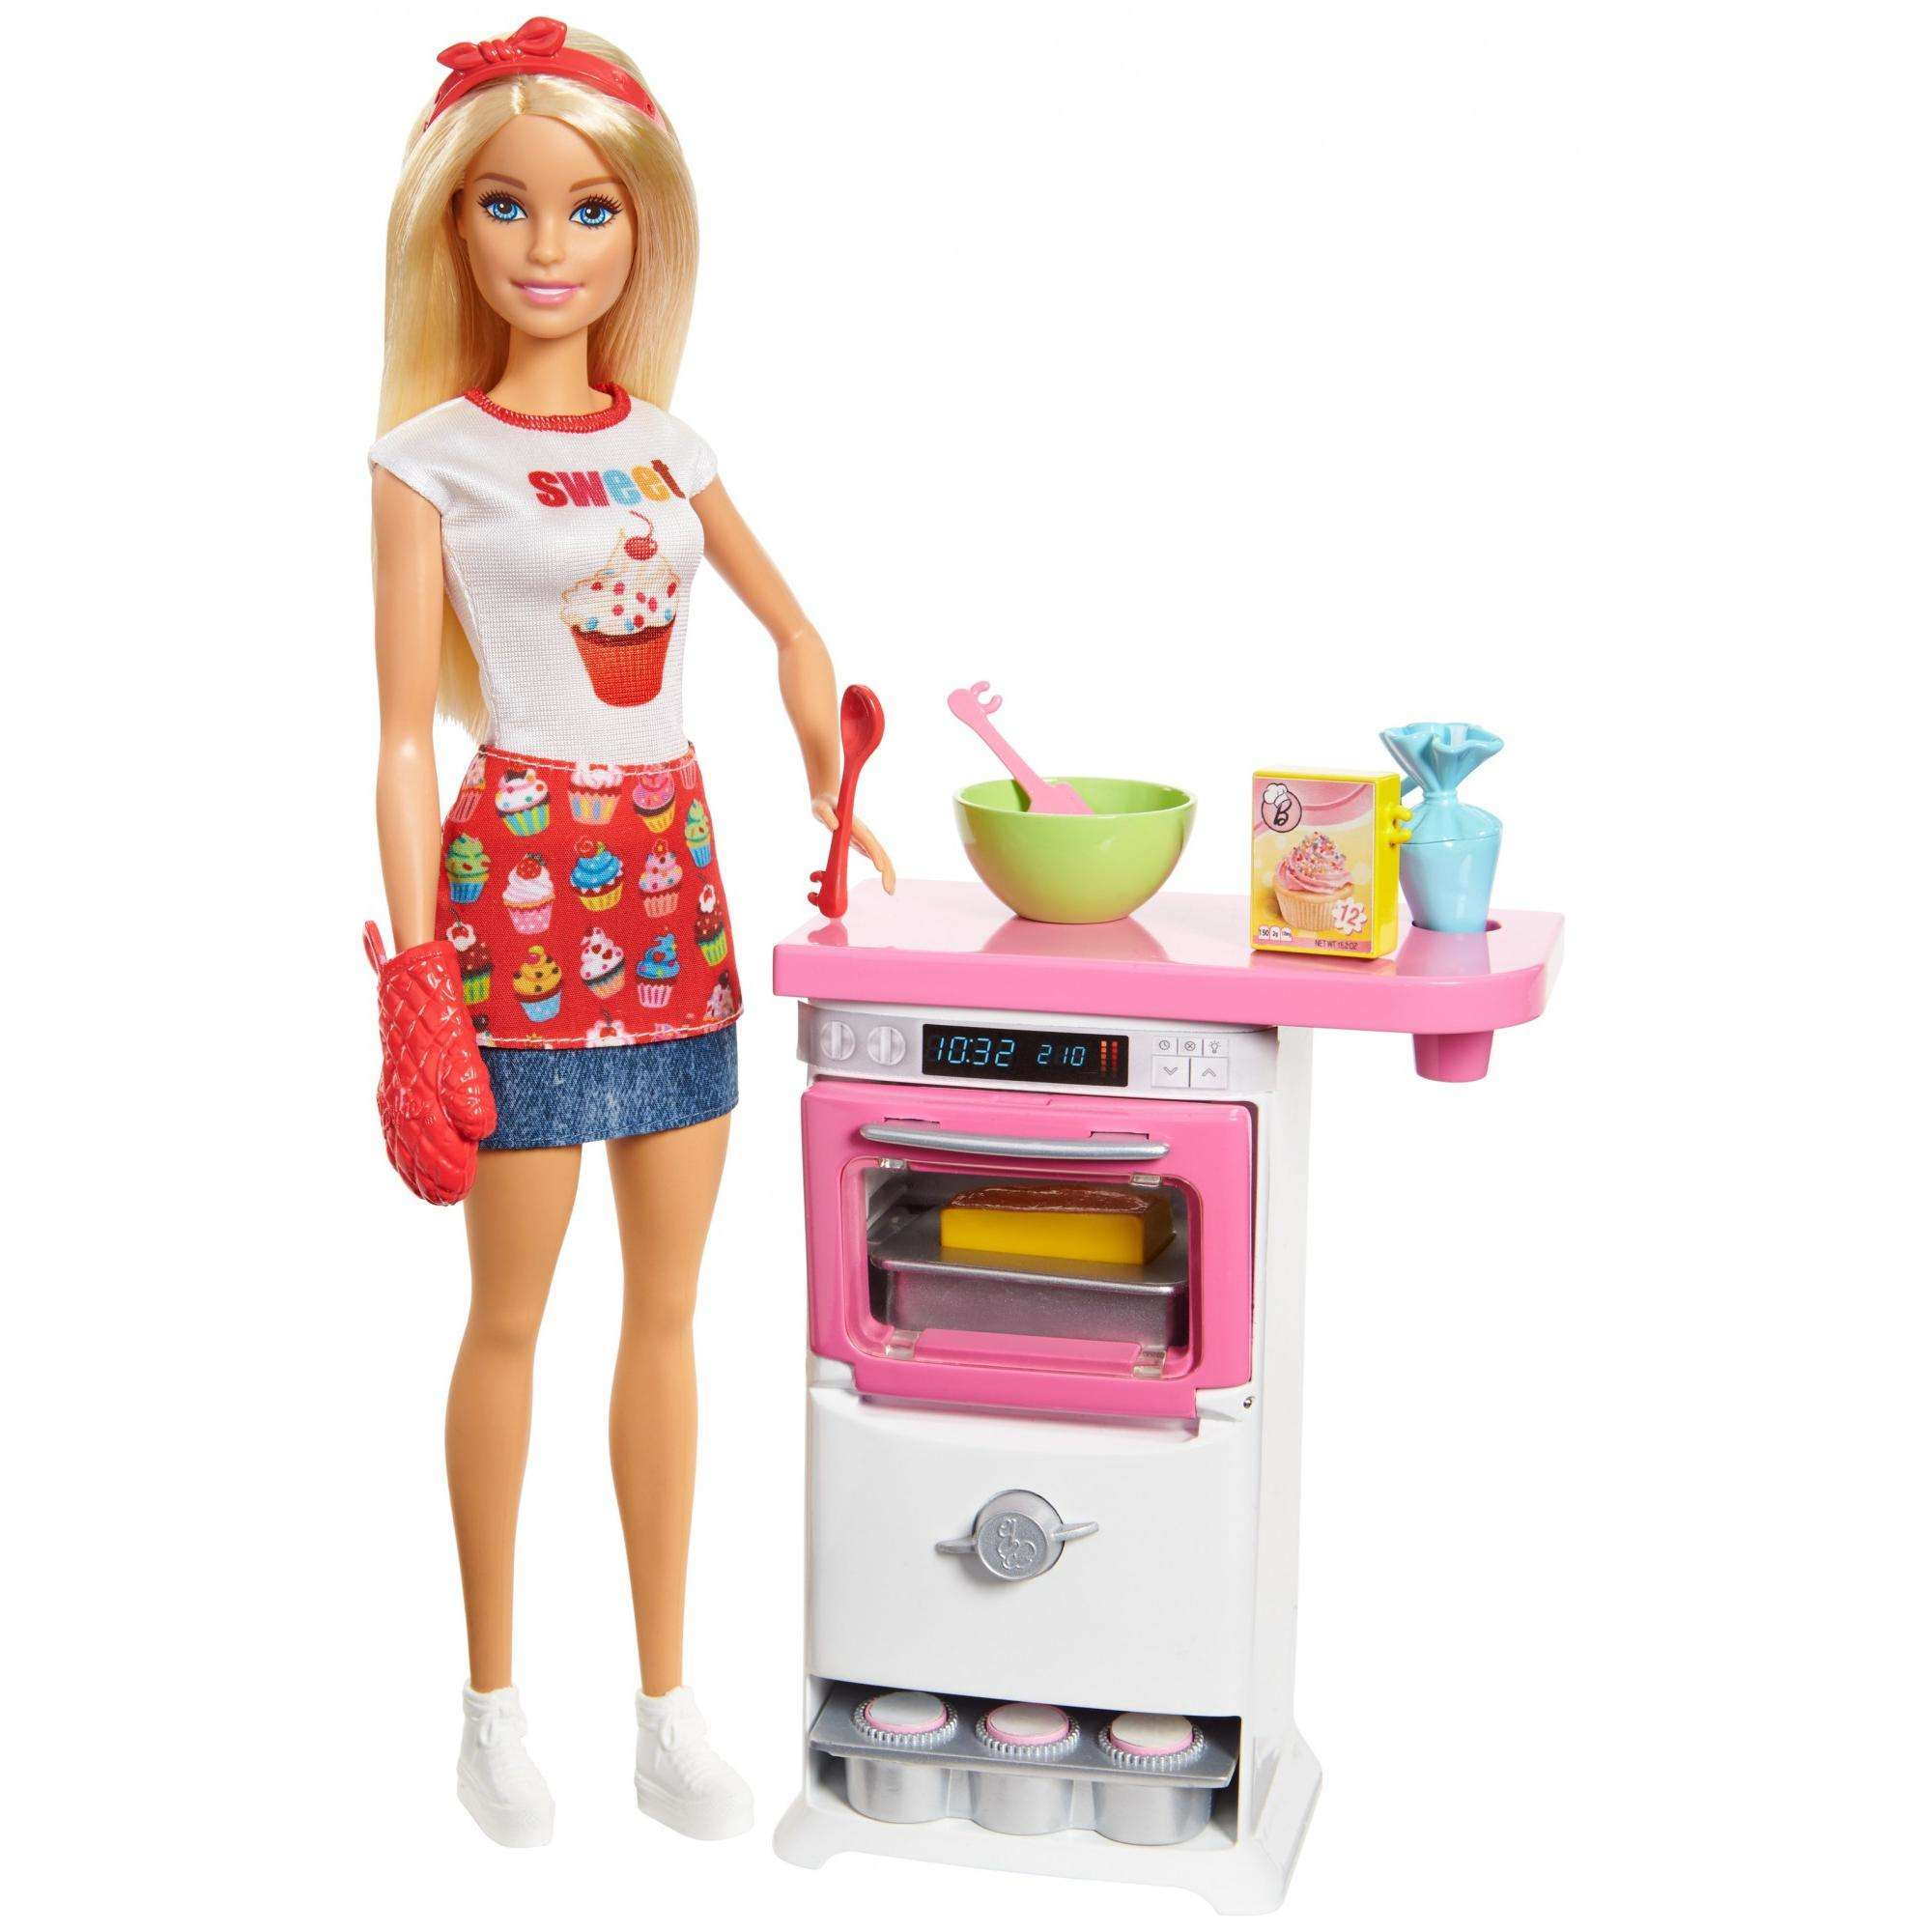 Barbie Cooking & Baking Chef Storytelling Doll and Play Set